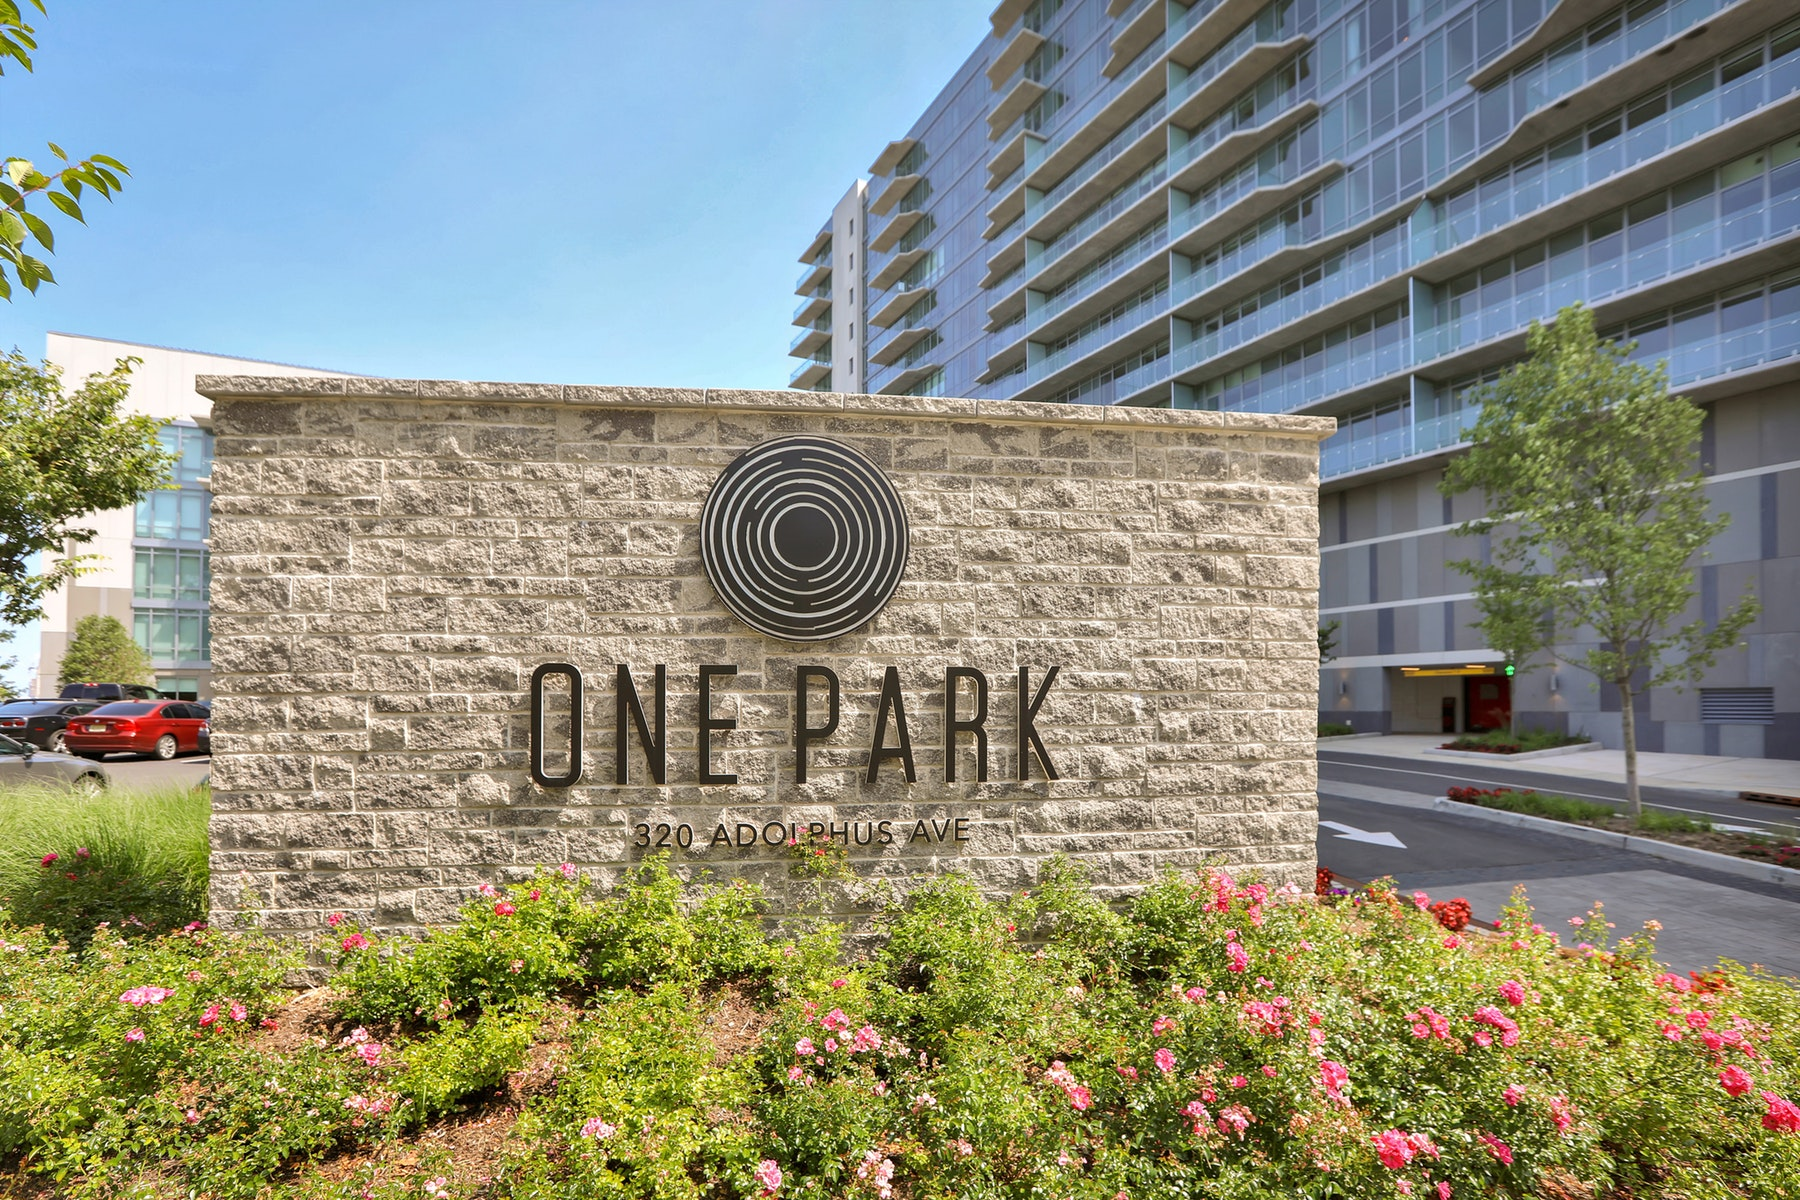 Condominiums للـ Sale في One Park 320 Adolphus Ave #915, Cliffside Park, New Jersey 07010 United States